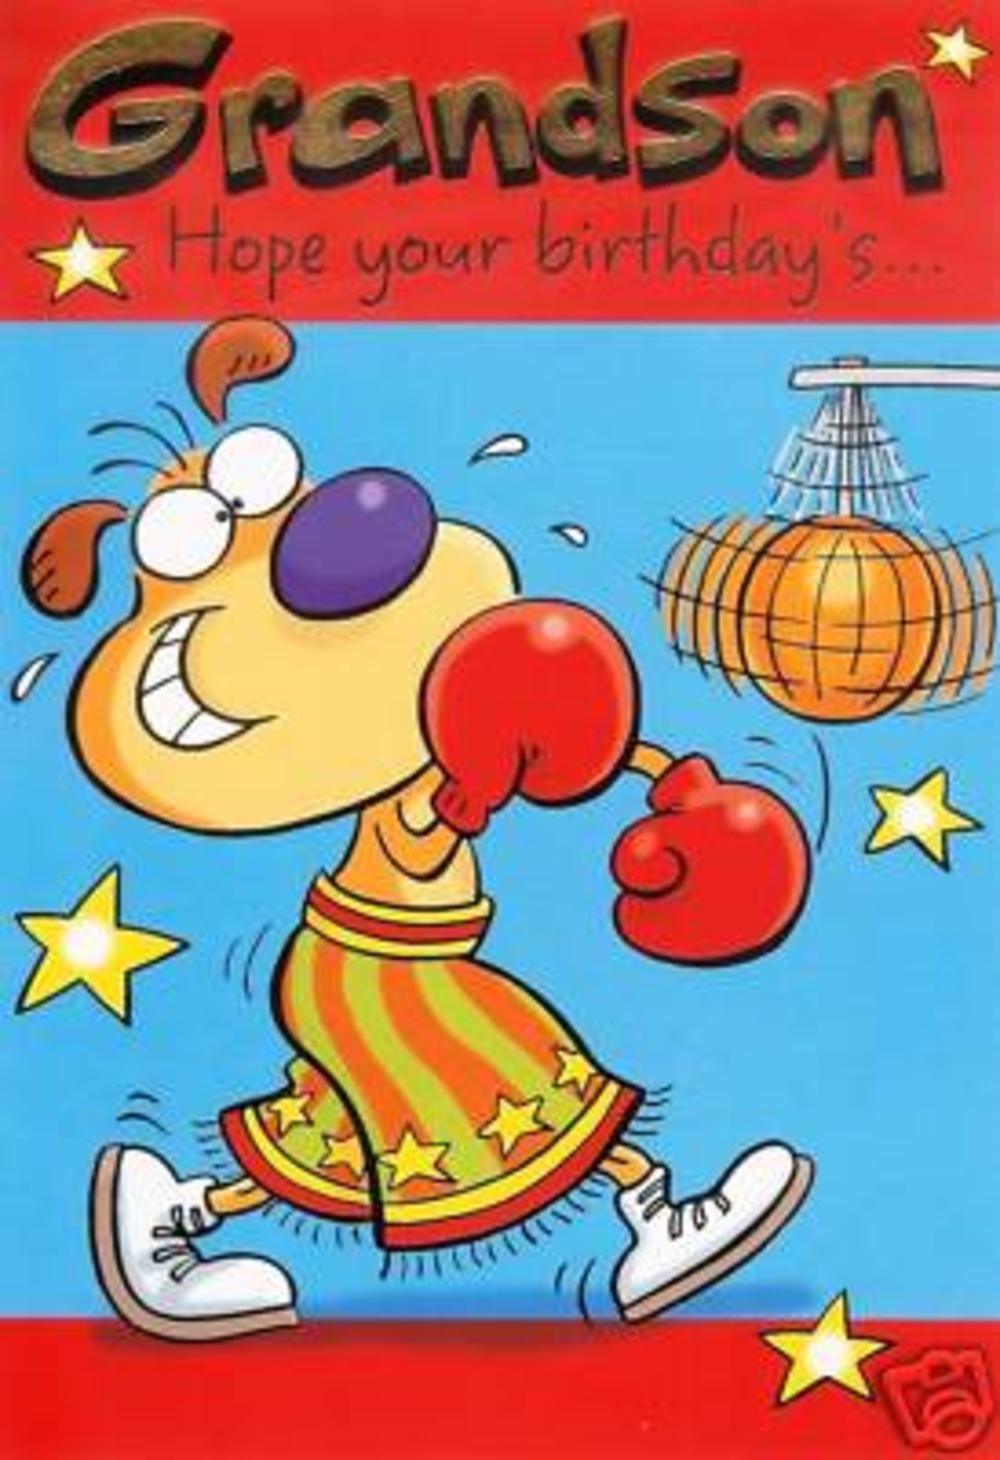 Grandson Hope Its a Knock Out Birthday Card Cards – Birthday Cards Grandson